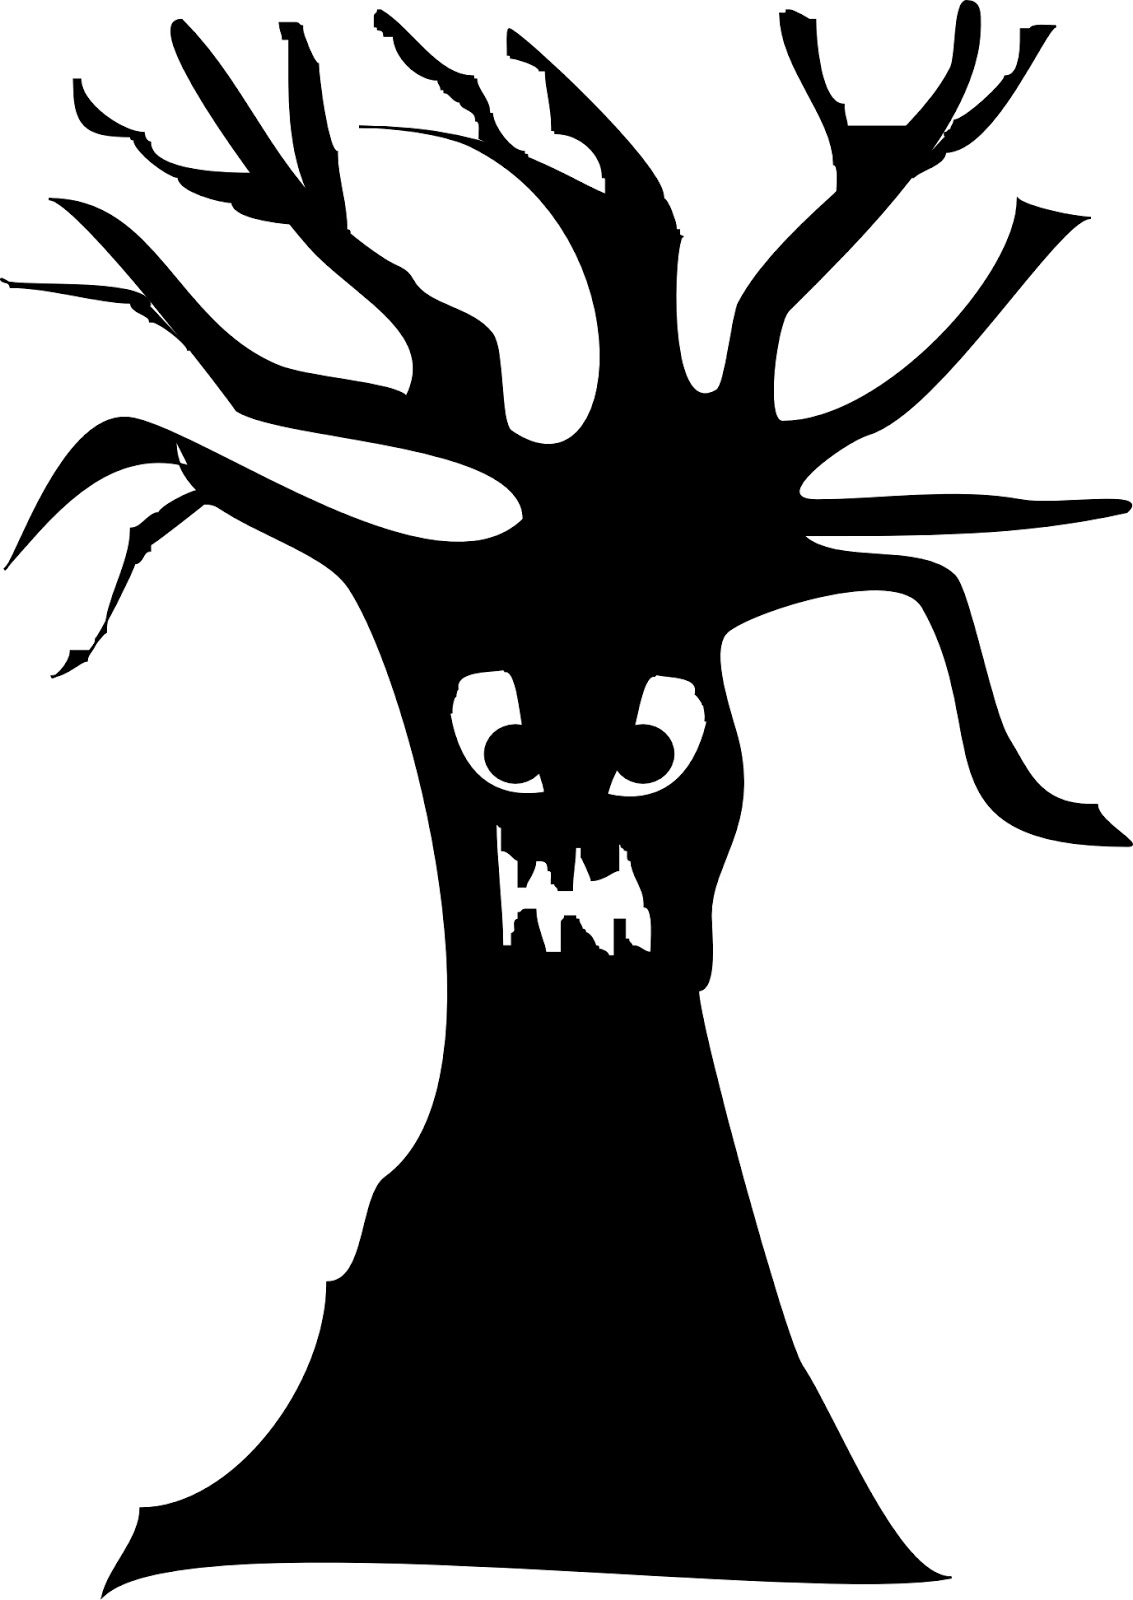 10 Scary Tree Silhouette Free Cliparts That You Can Download To You